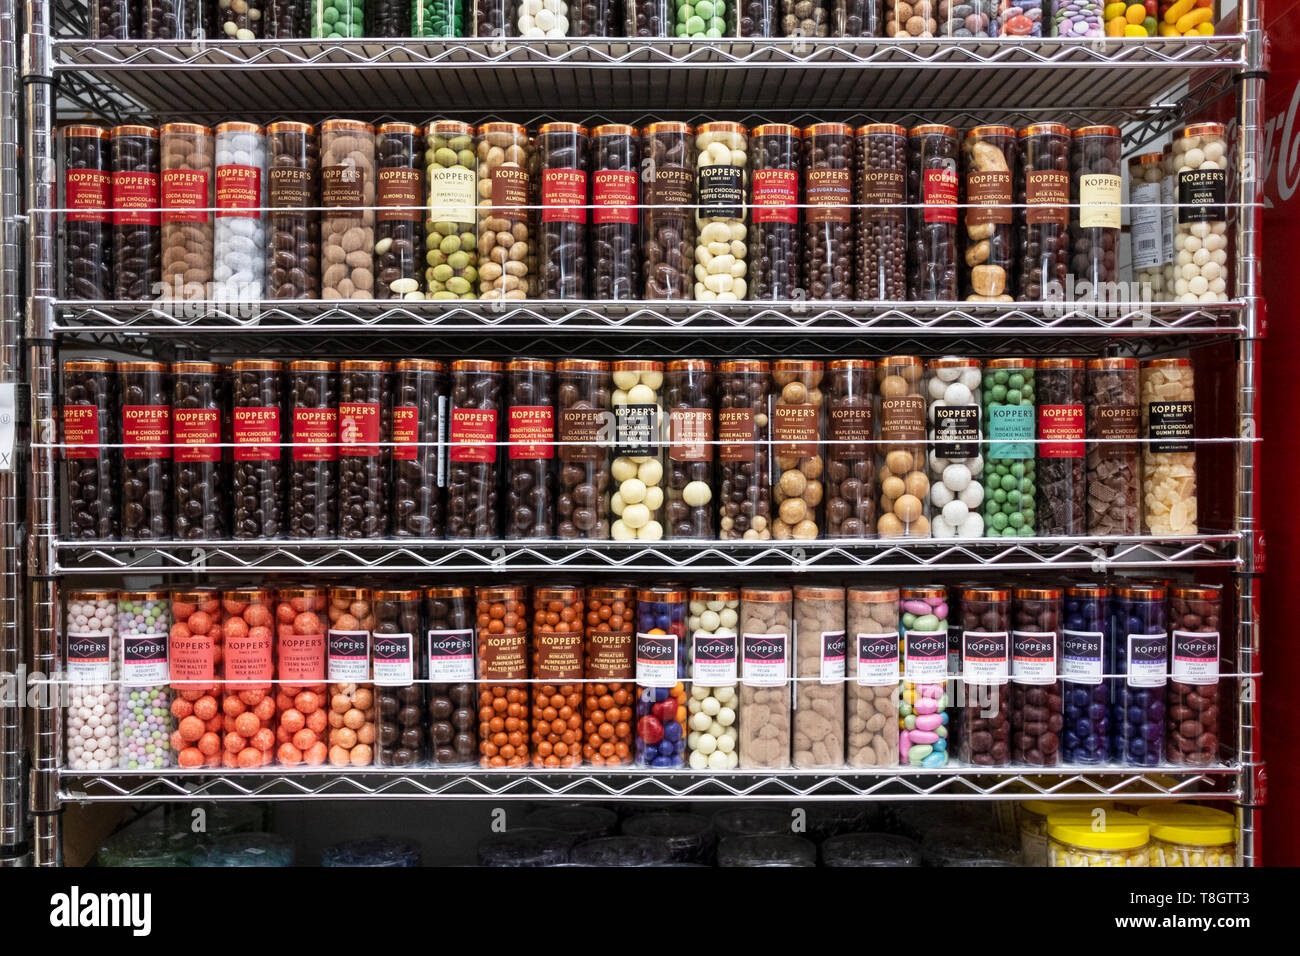 A neat display of jars of Kopper's chocolates and candies at ECONOMY CANDY on Rivington Street on the lower east side of Manhattan, New York City. Stock Photo